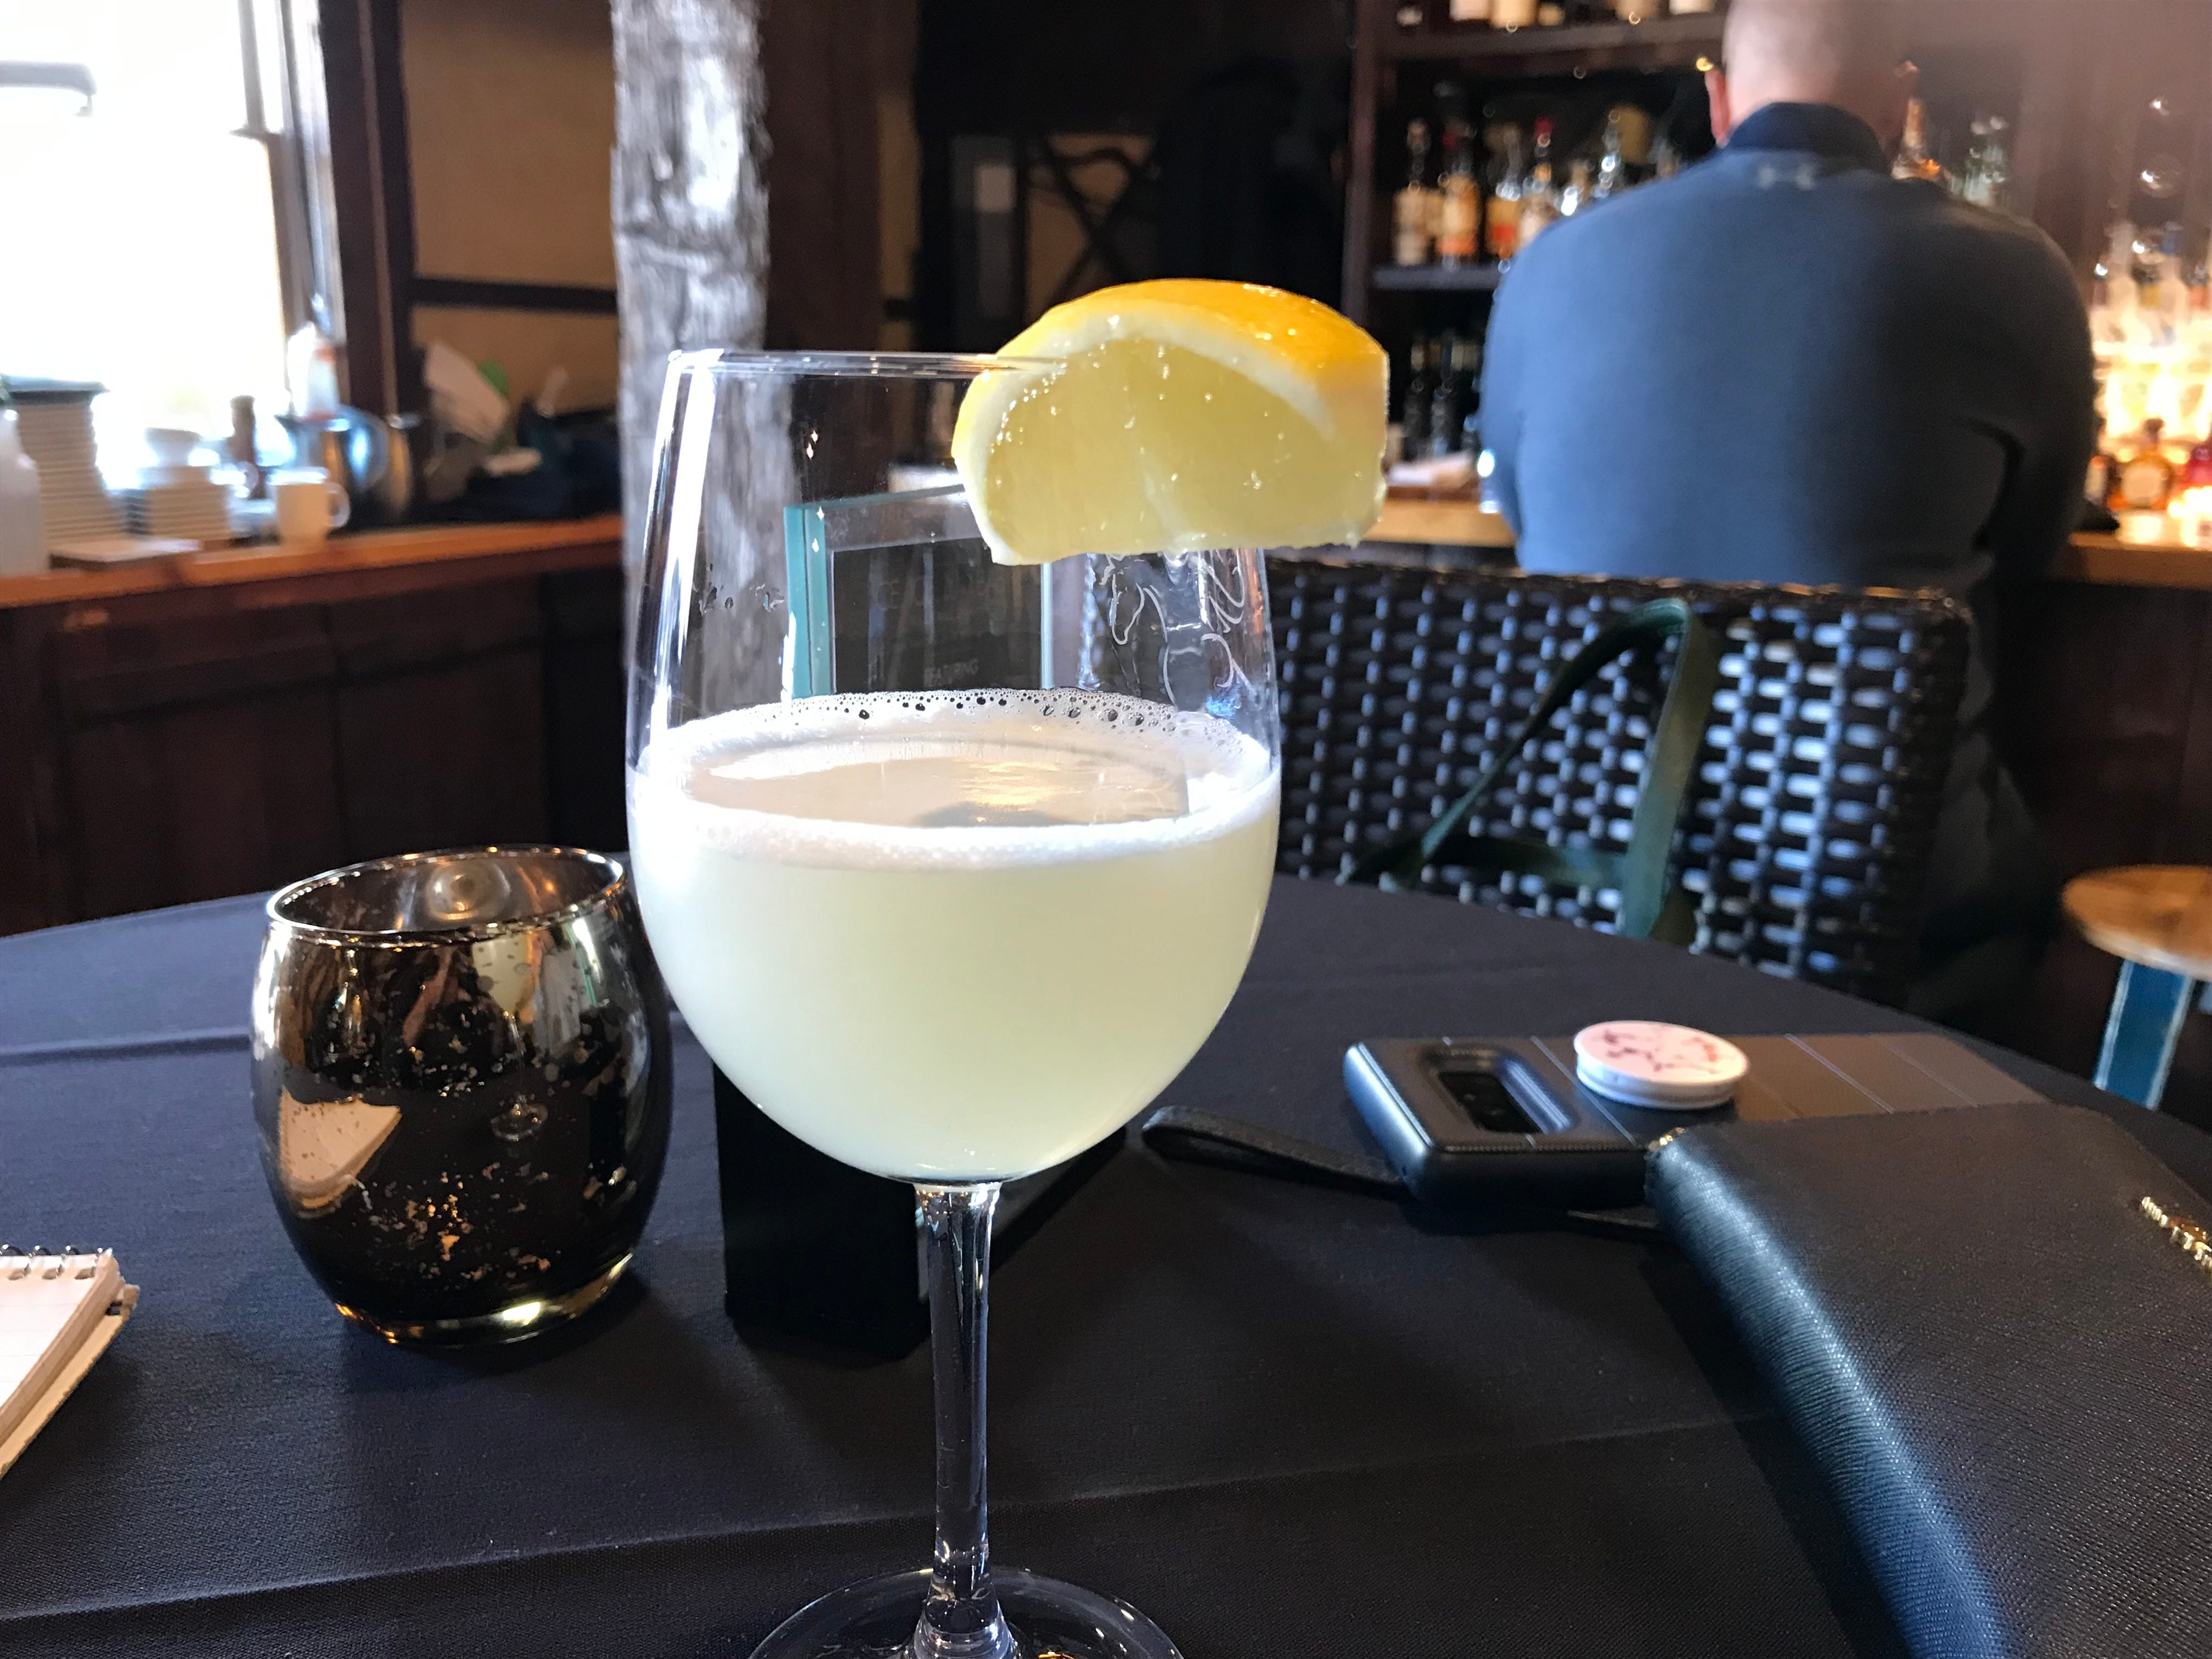 Vodka ice wine martinis were featured on the menu at the Granary during the launch of ice wine, along with rum and bourbon ice wine martinis.